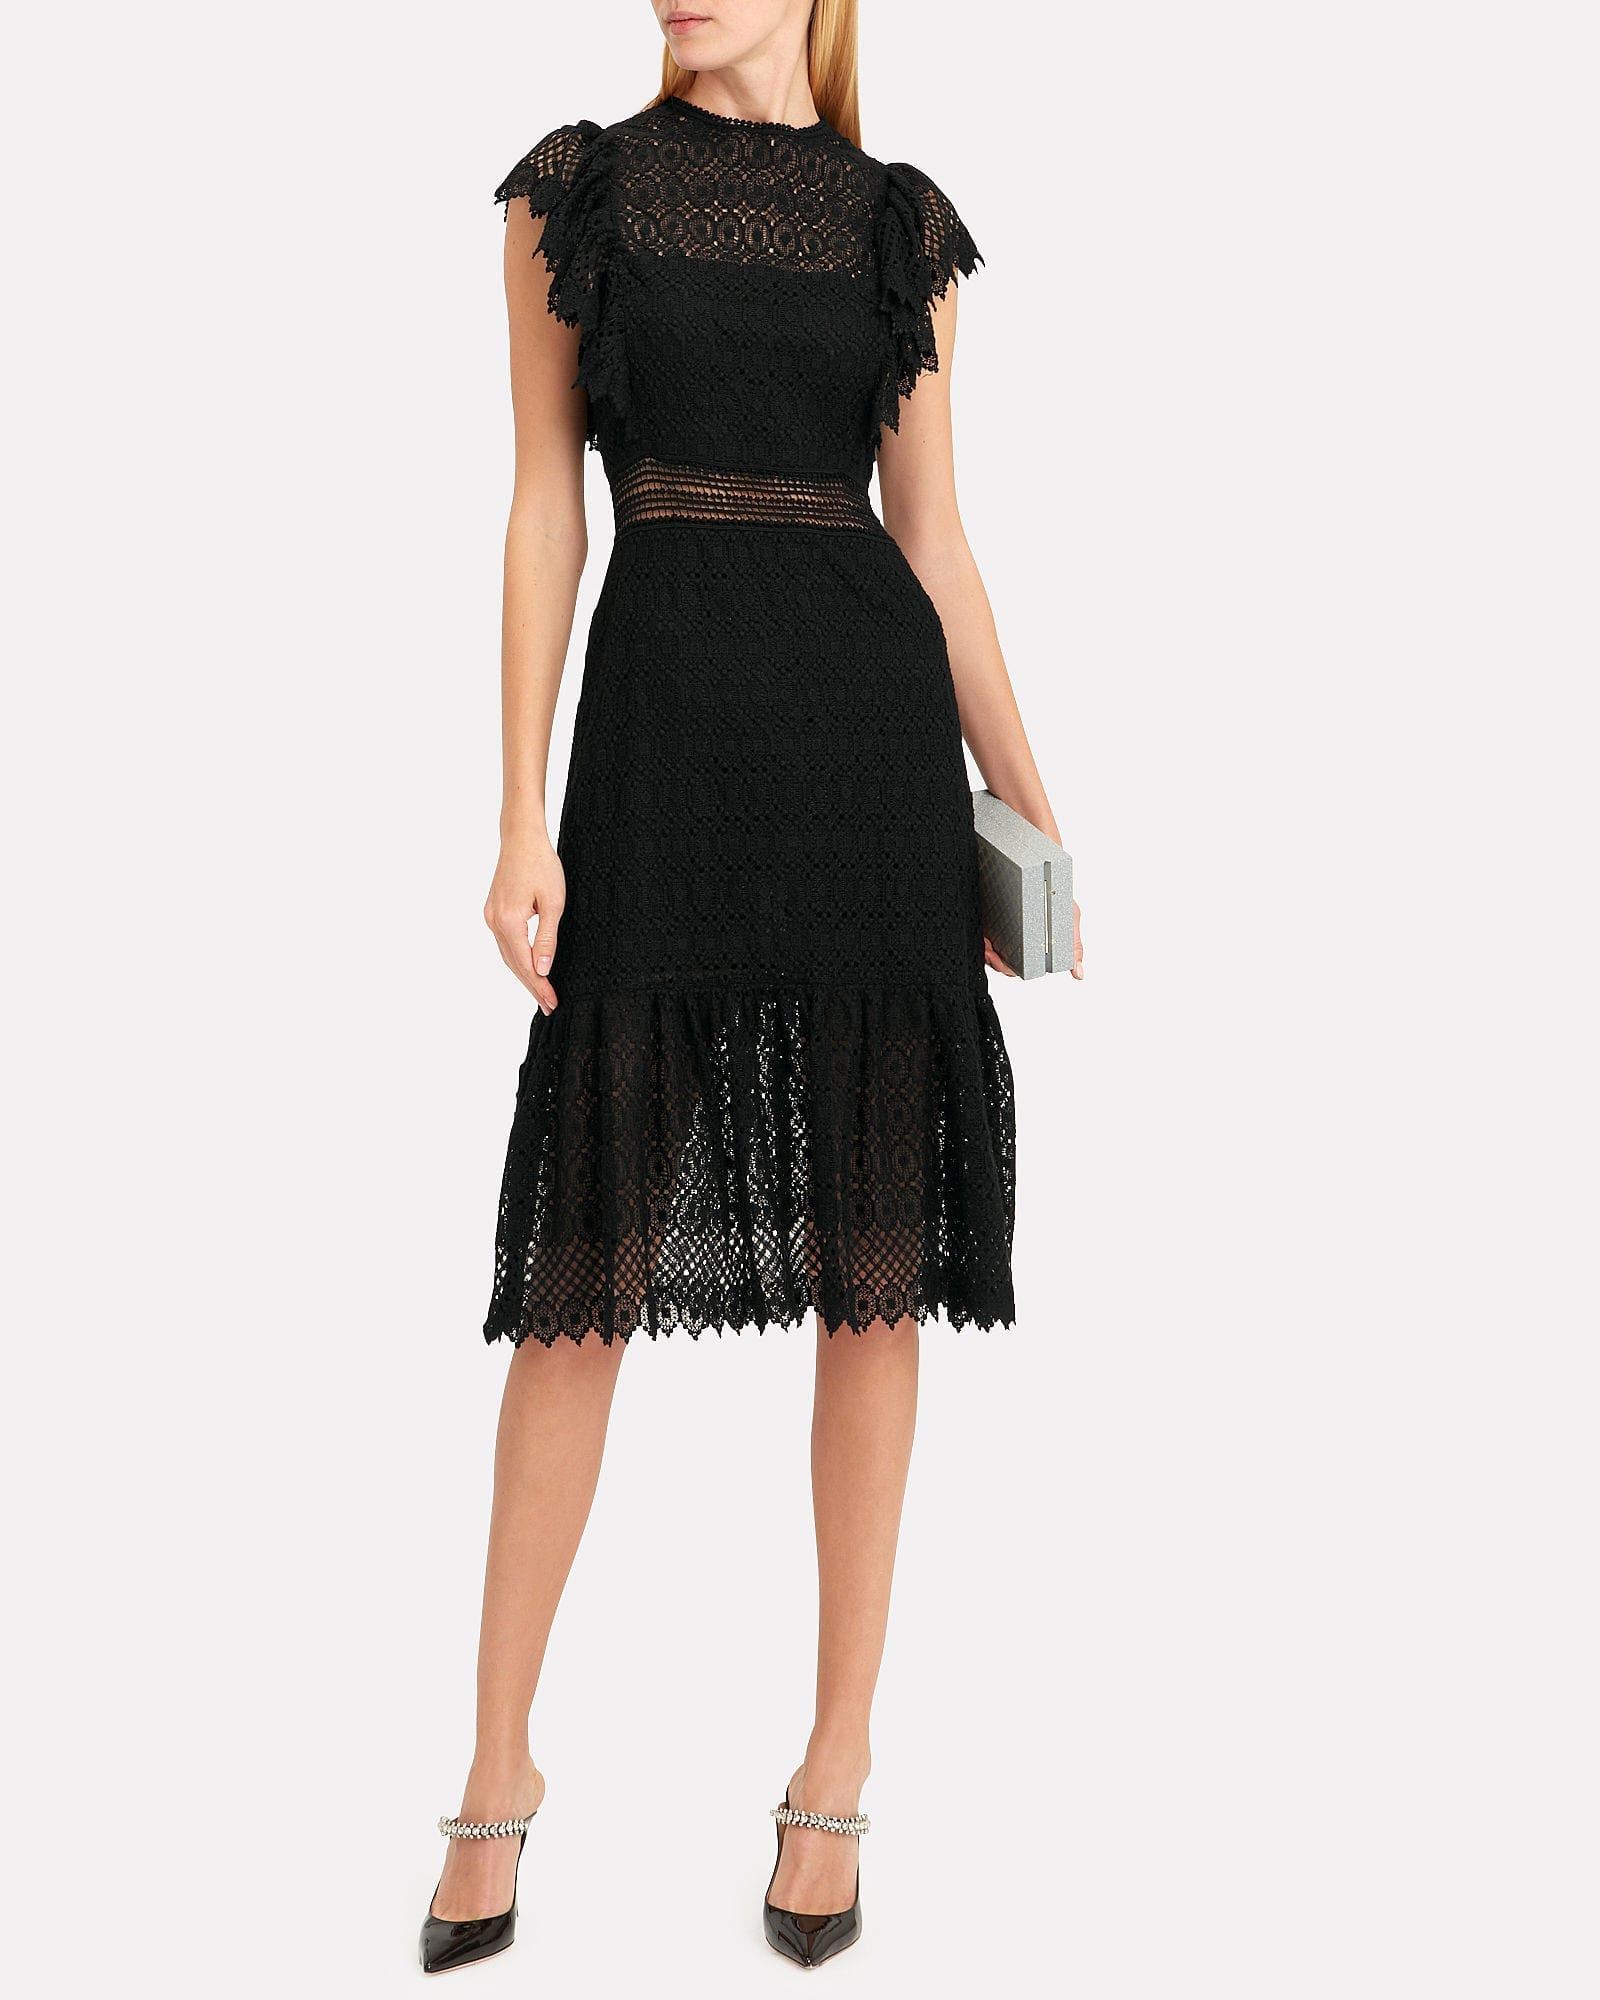 PHILOSOPHY DI LORENZO SERAFINI Crochet Black Dress